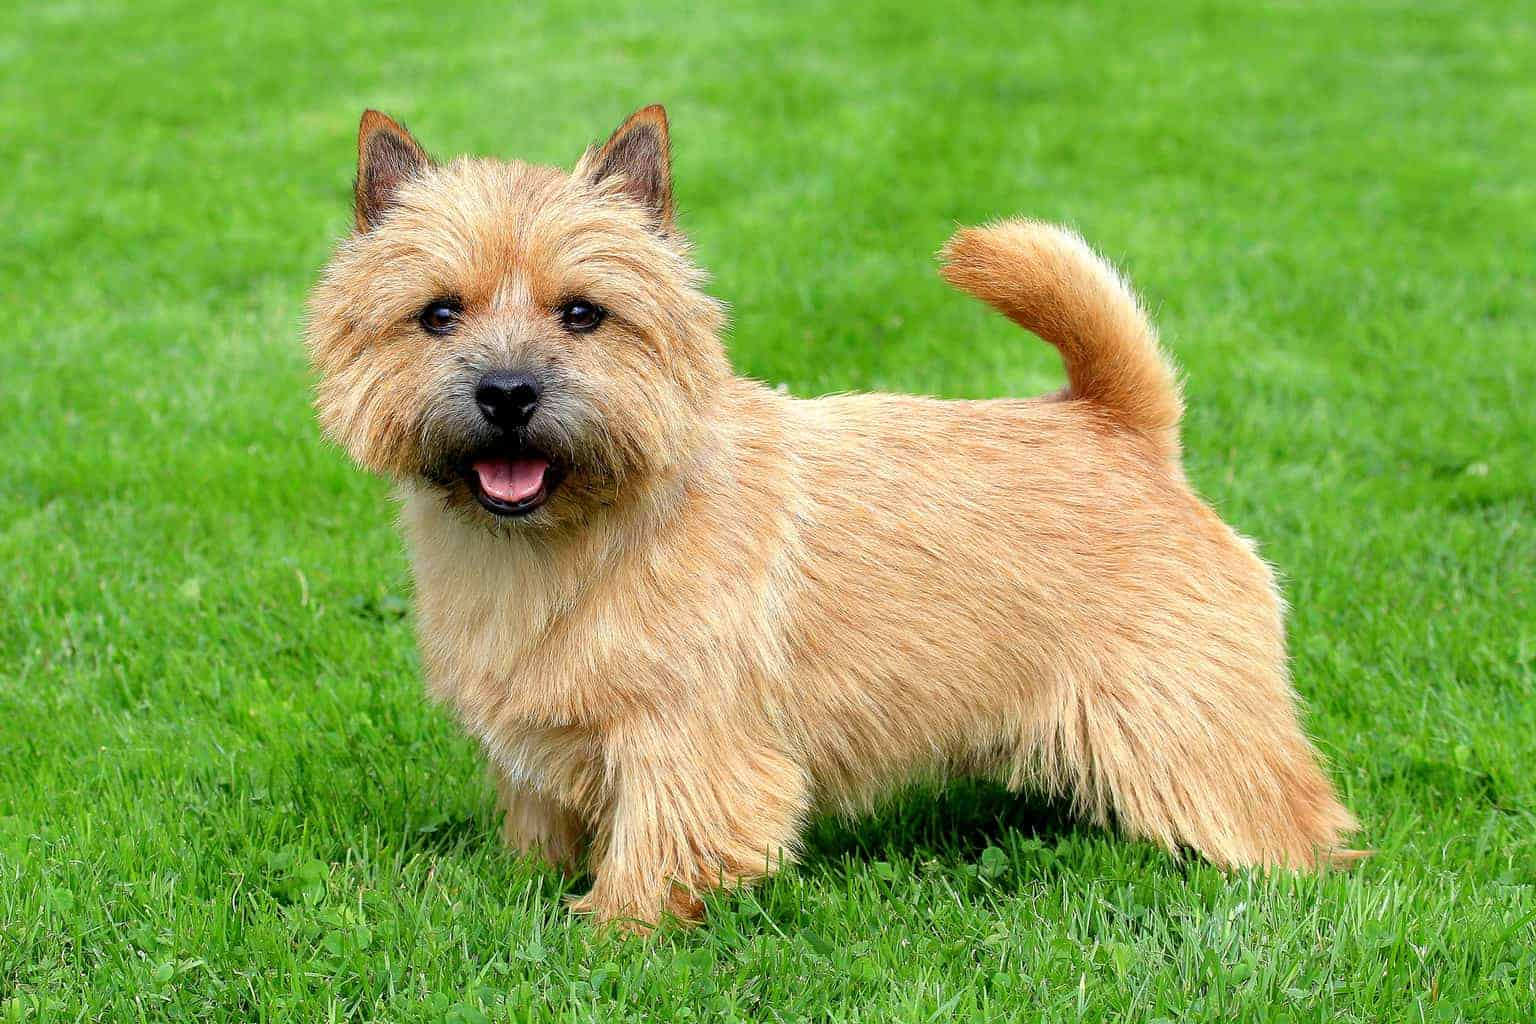 The portrait of Norwich Terrier in a garden